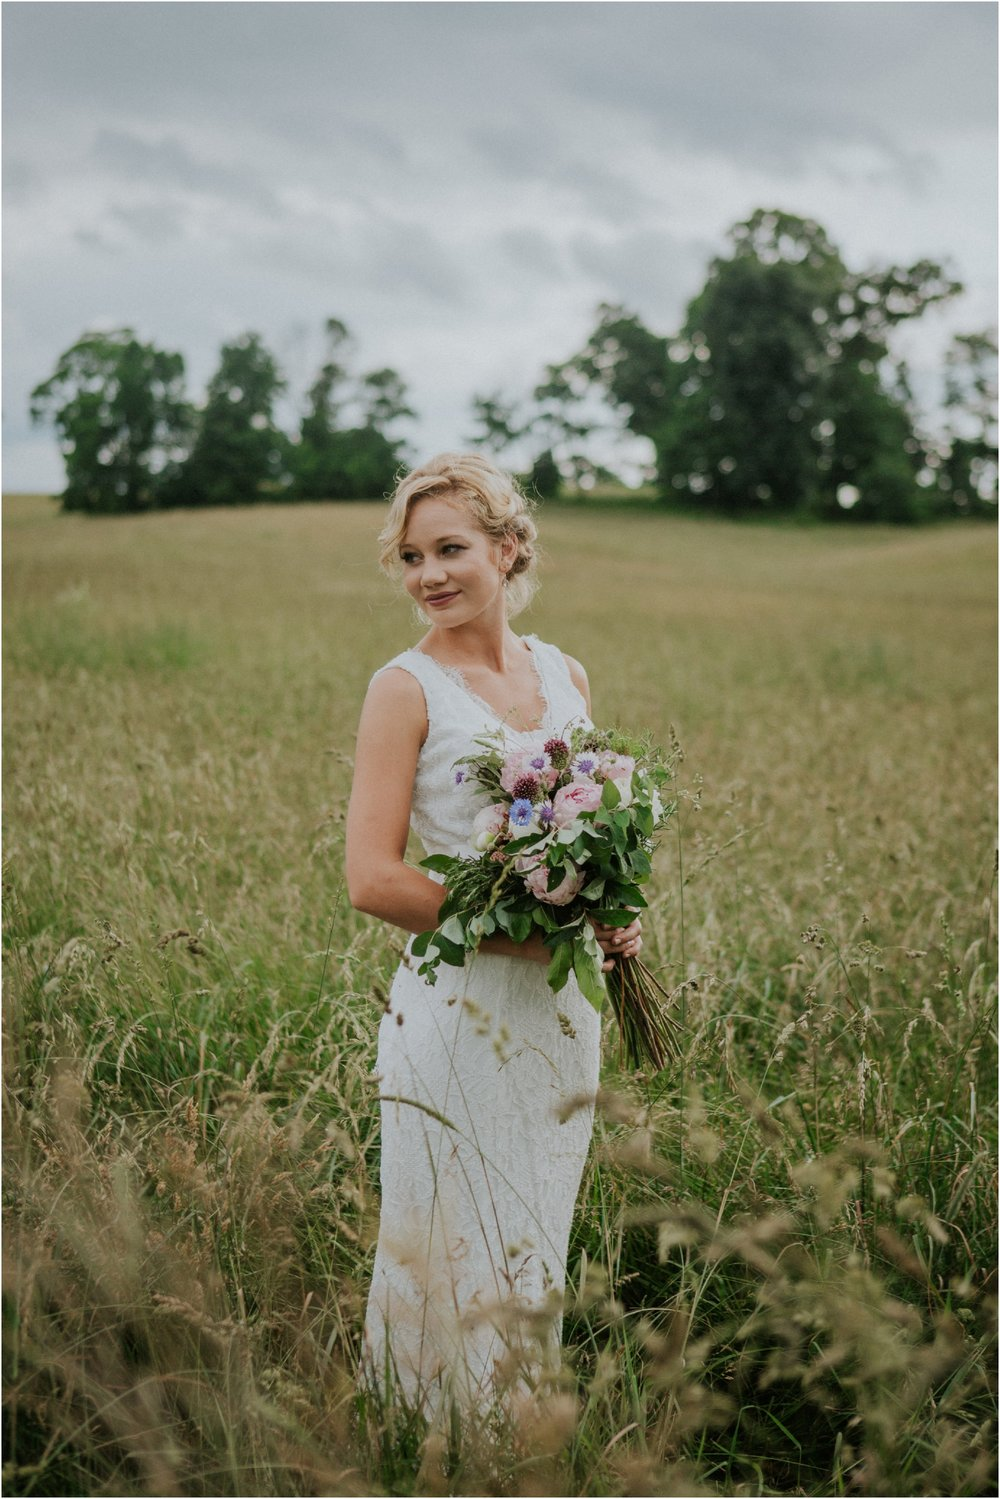 the-millstone-limestone-rustic-intimate-outdoors-backyard-wedding-wildflowers-tennessee_0058.jpg